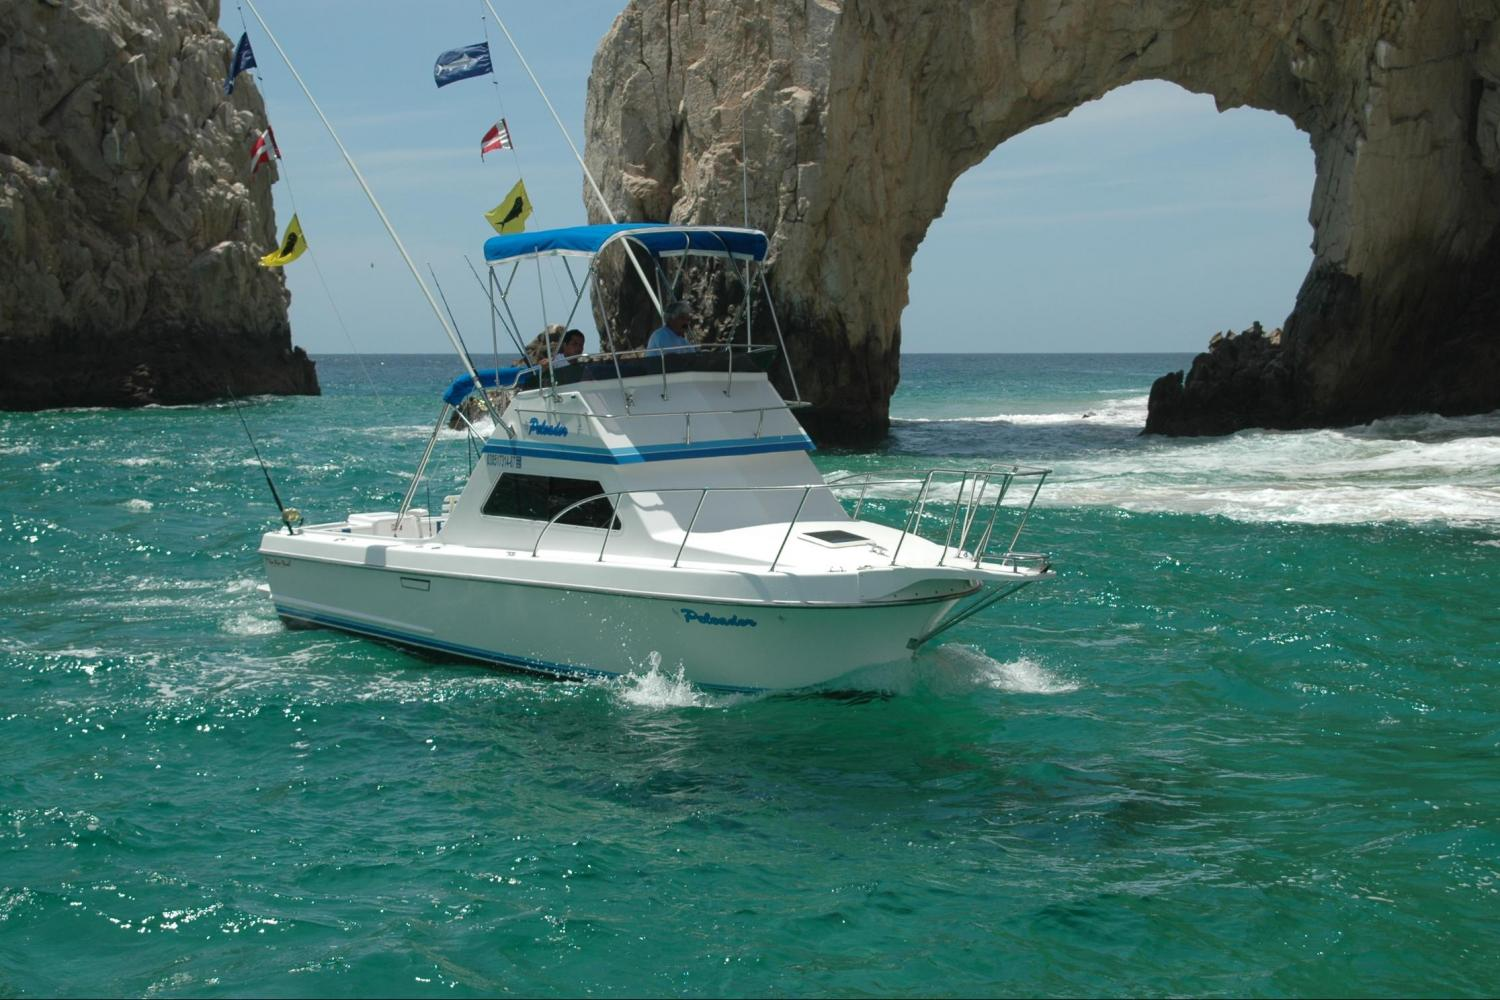 Cabo Sport Fishing on a Private 28' Boat - Full Day Trip